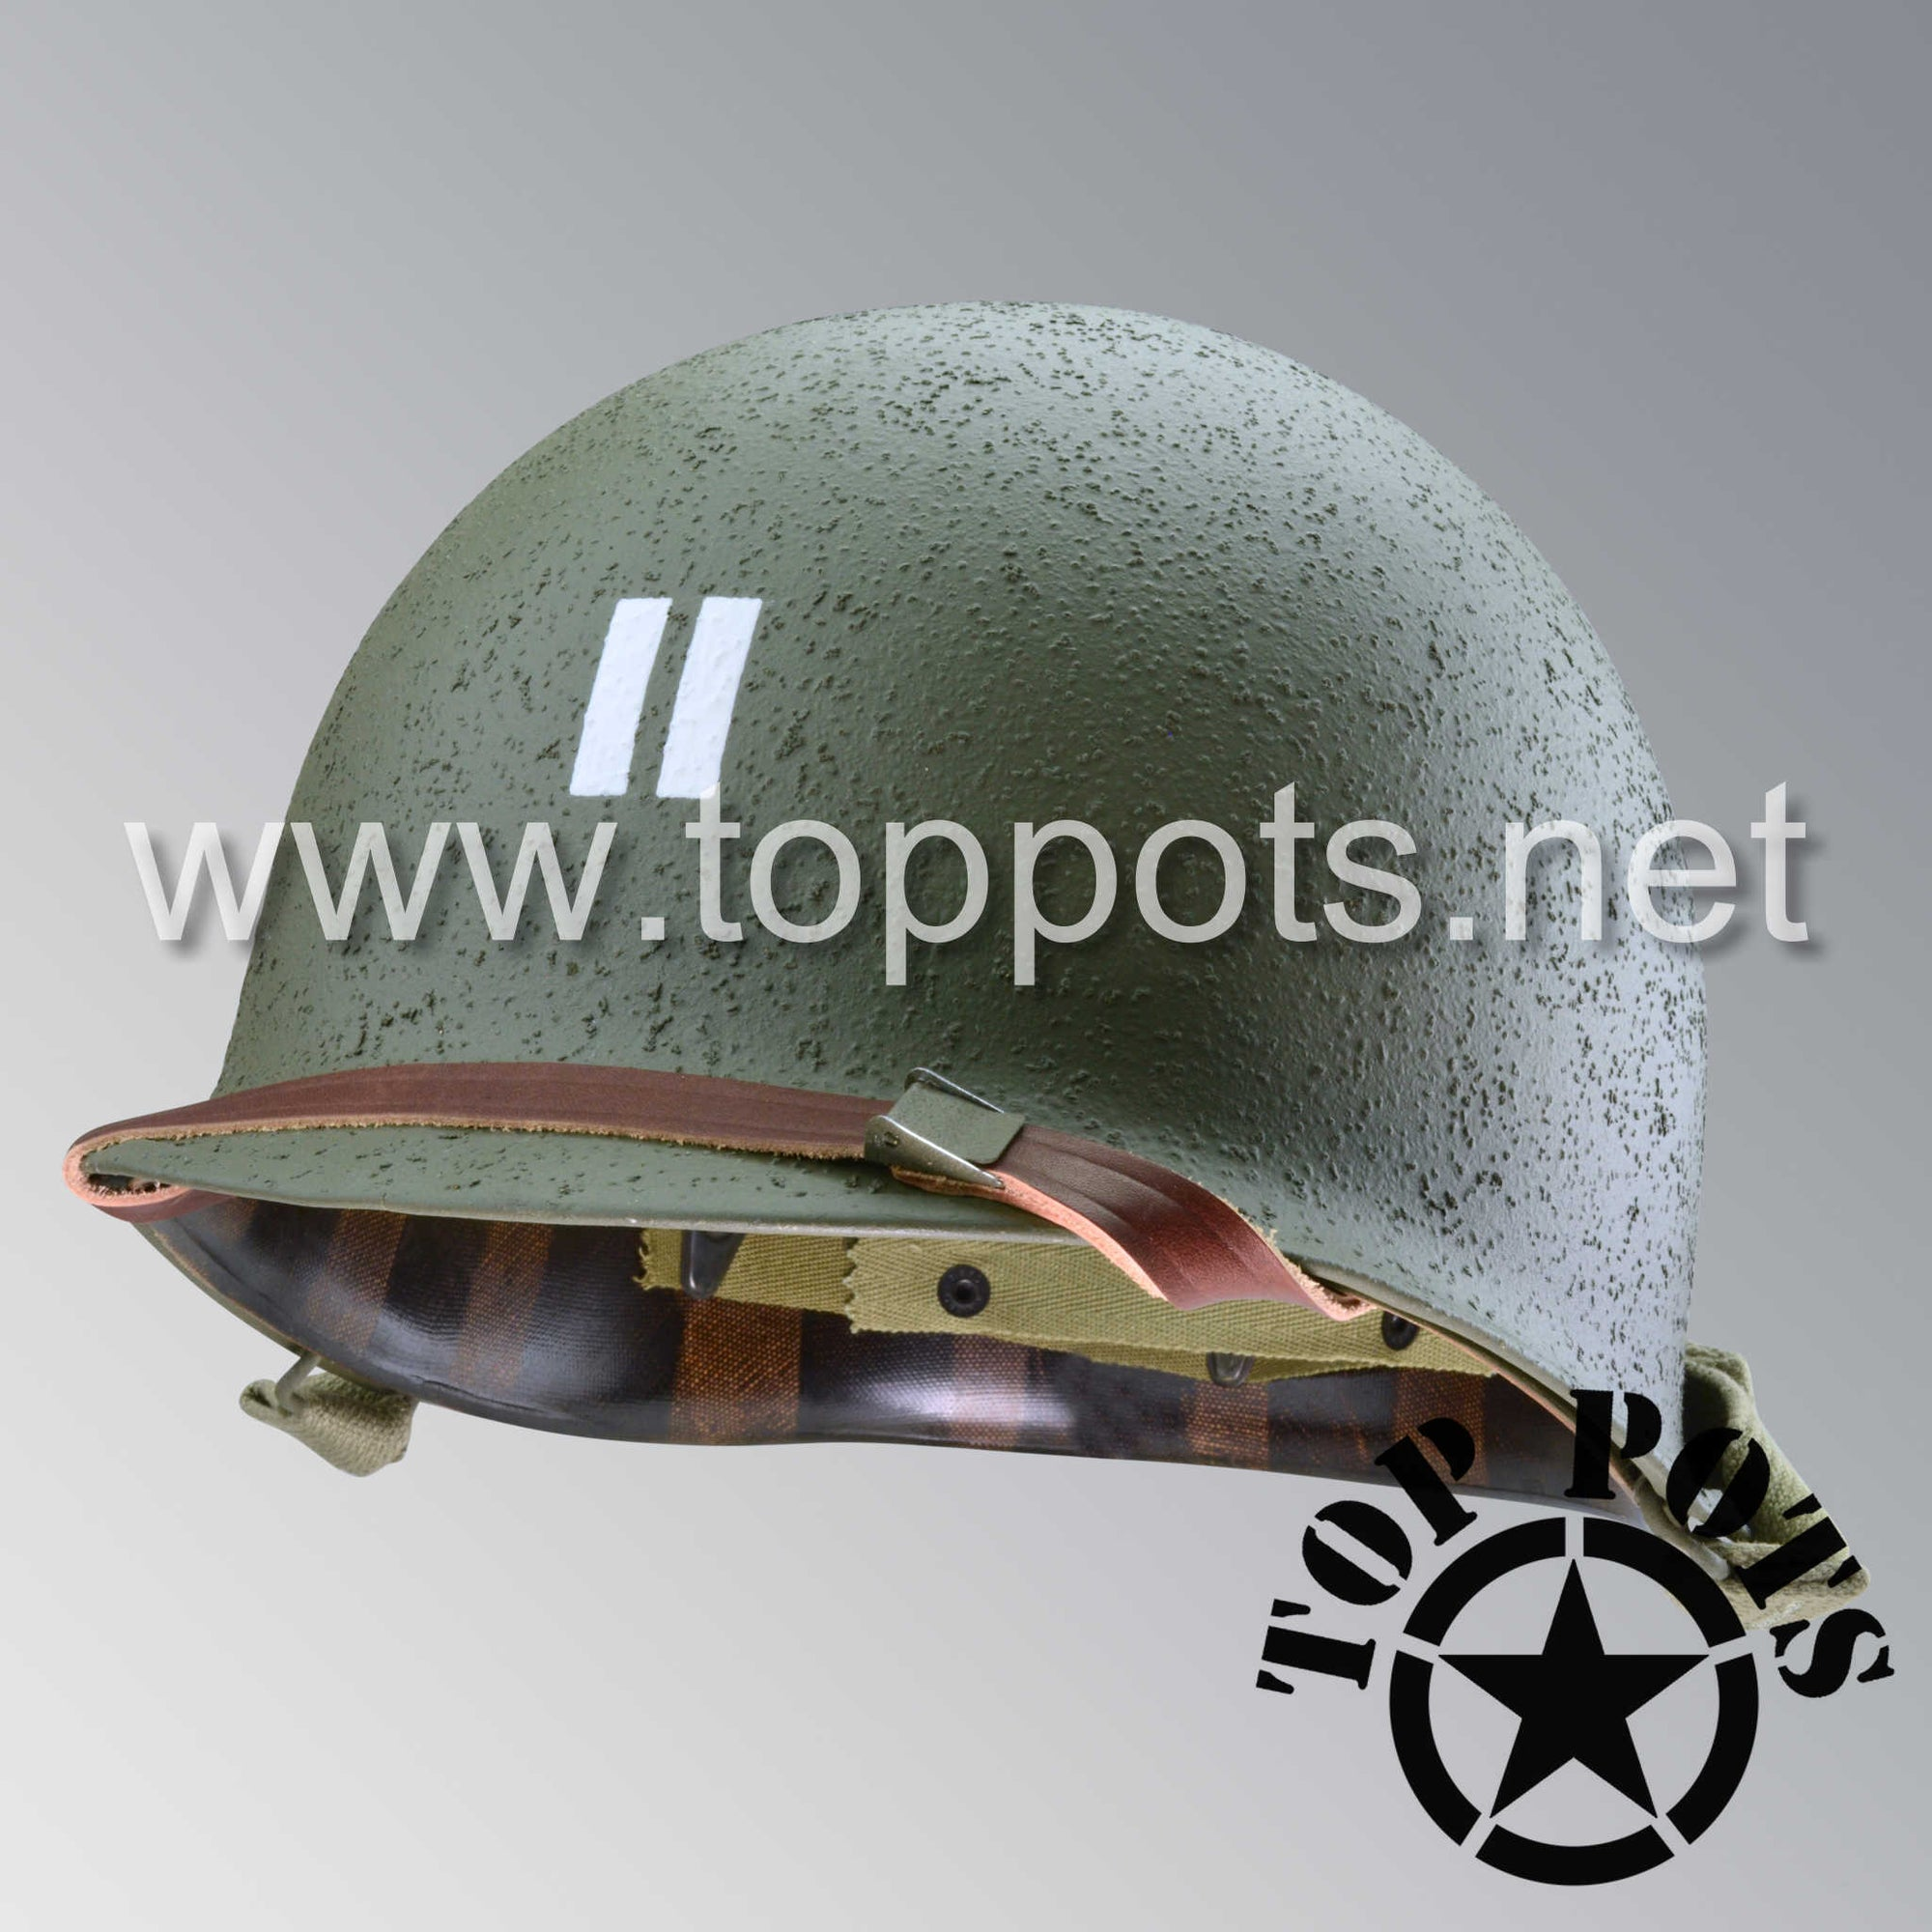 Image 1 of WWII US Army Restored Original M1 Infantry Helmet Swivel Bale Shell and Liner with 2nd Ranger Captain Rank and Leadership Stripe